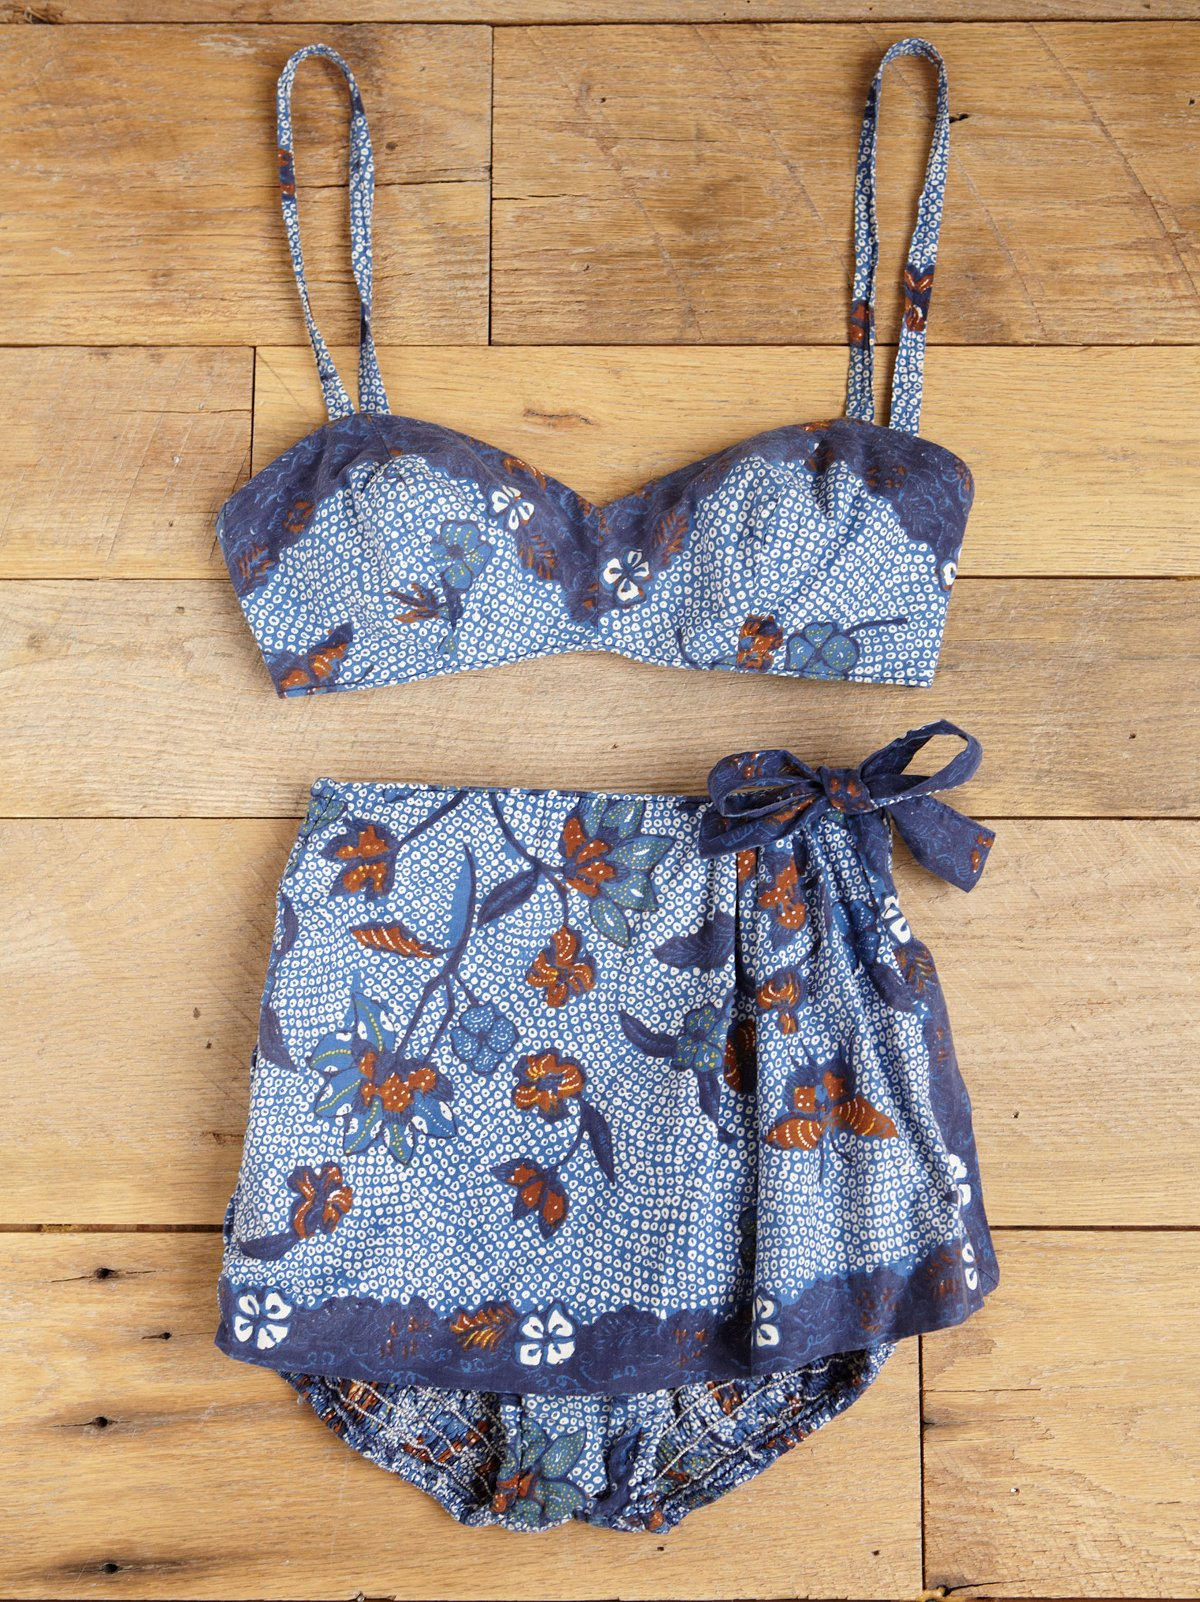 Vintage Batik Printed Two-Piece Playset